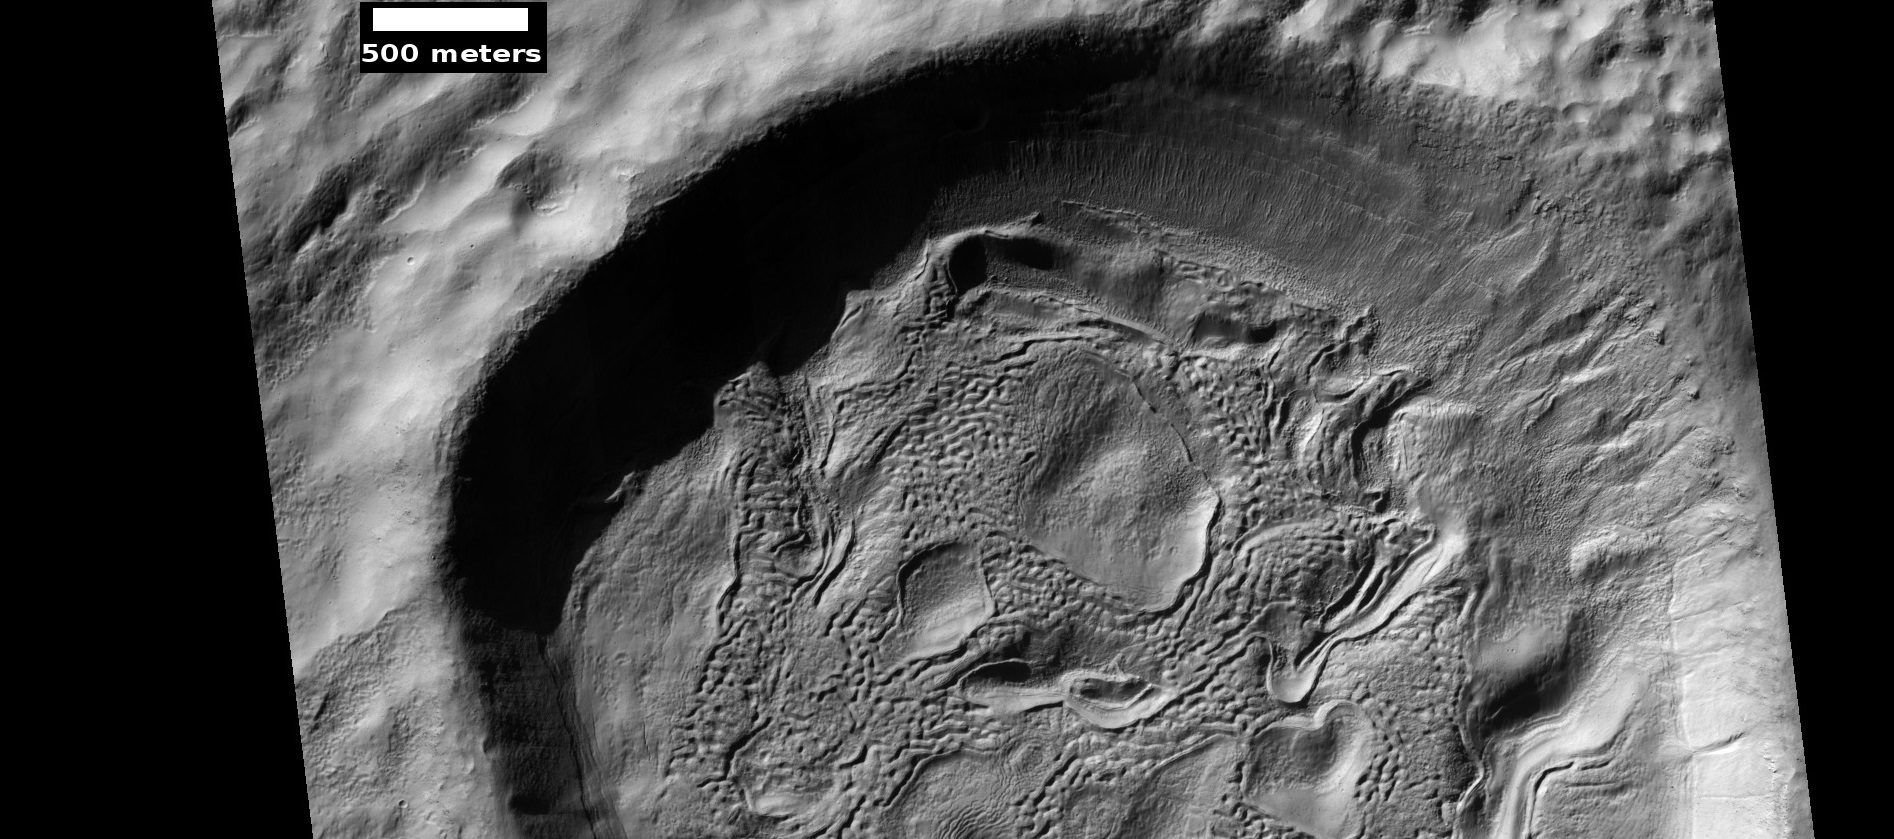 Crater floor showing brain terrain, as seen by HiRISE under HiWish program